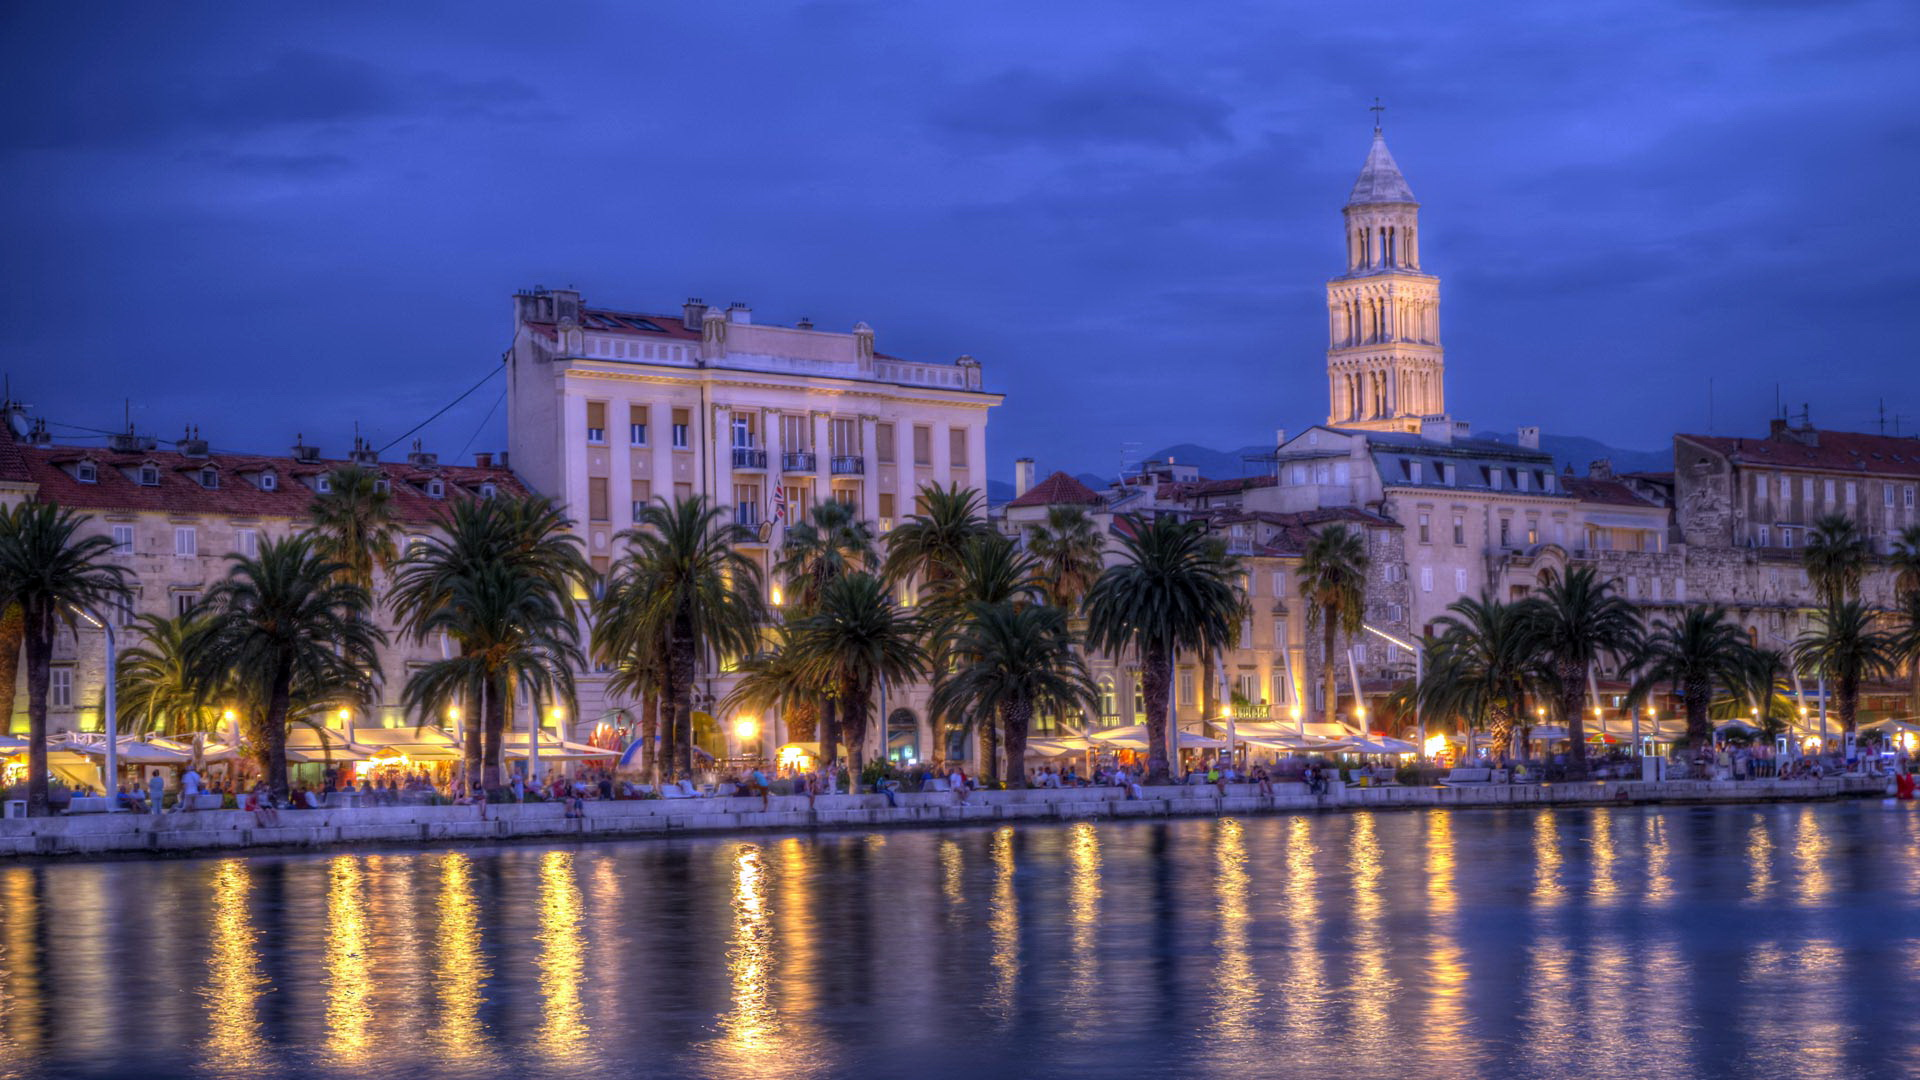 Riva waterfront, houses and Cathedral of Saint Domnius, Dujam, Duje, bell tower Old town by night, Split, Croatia, HDR